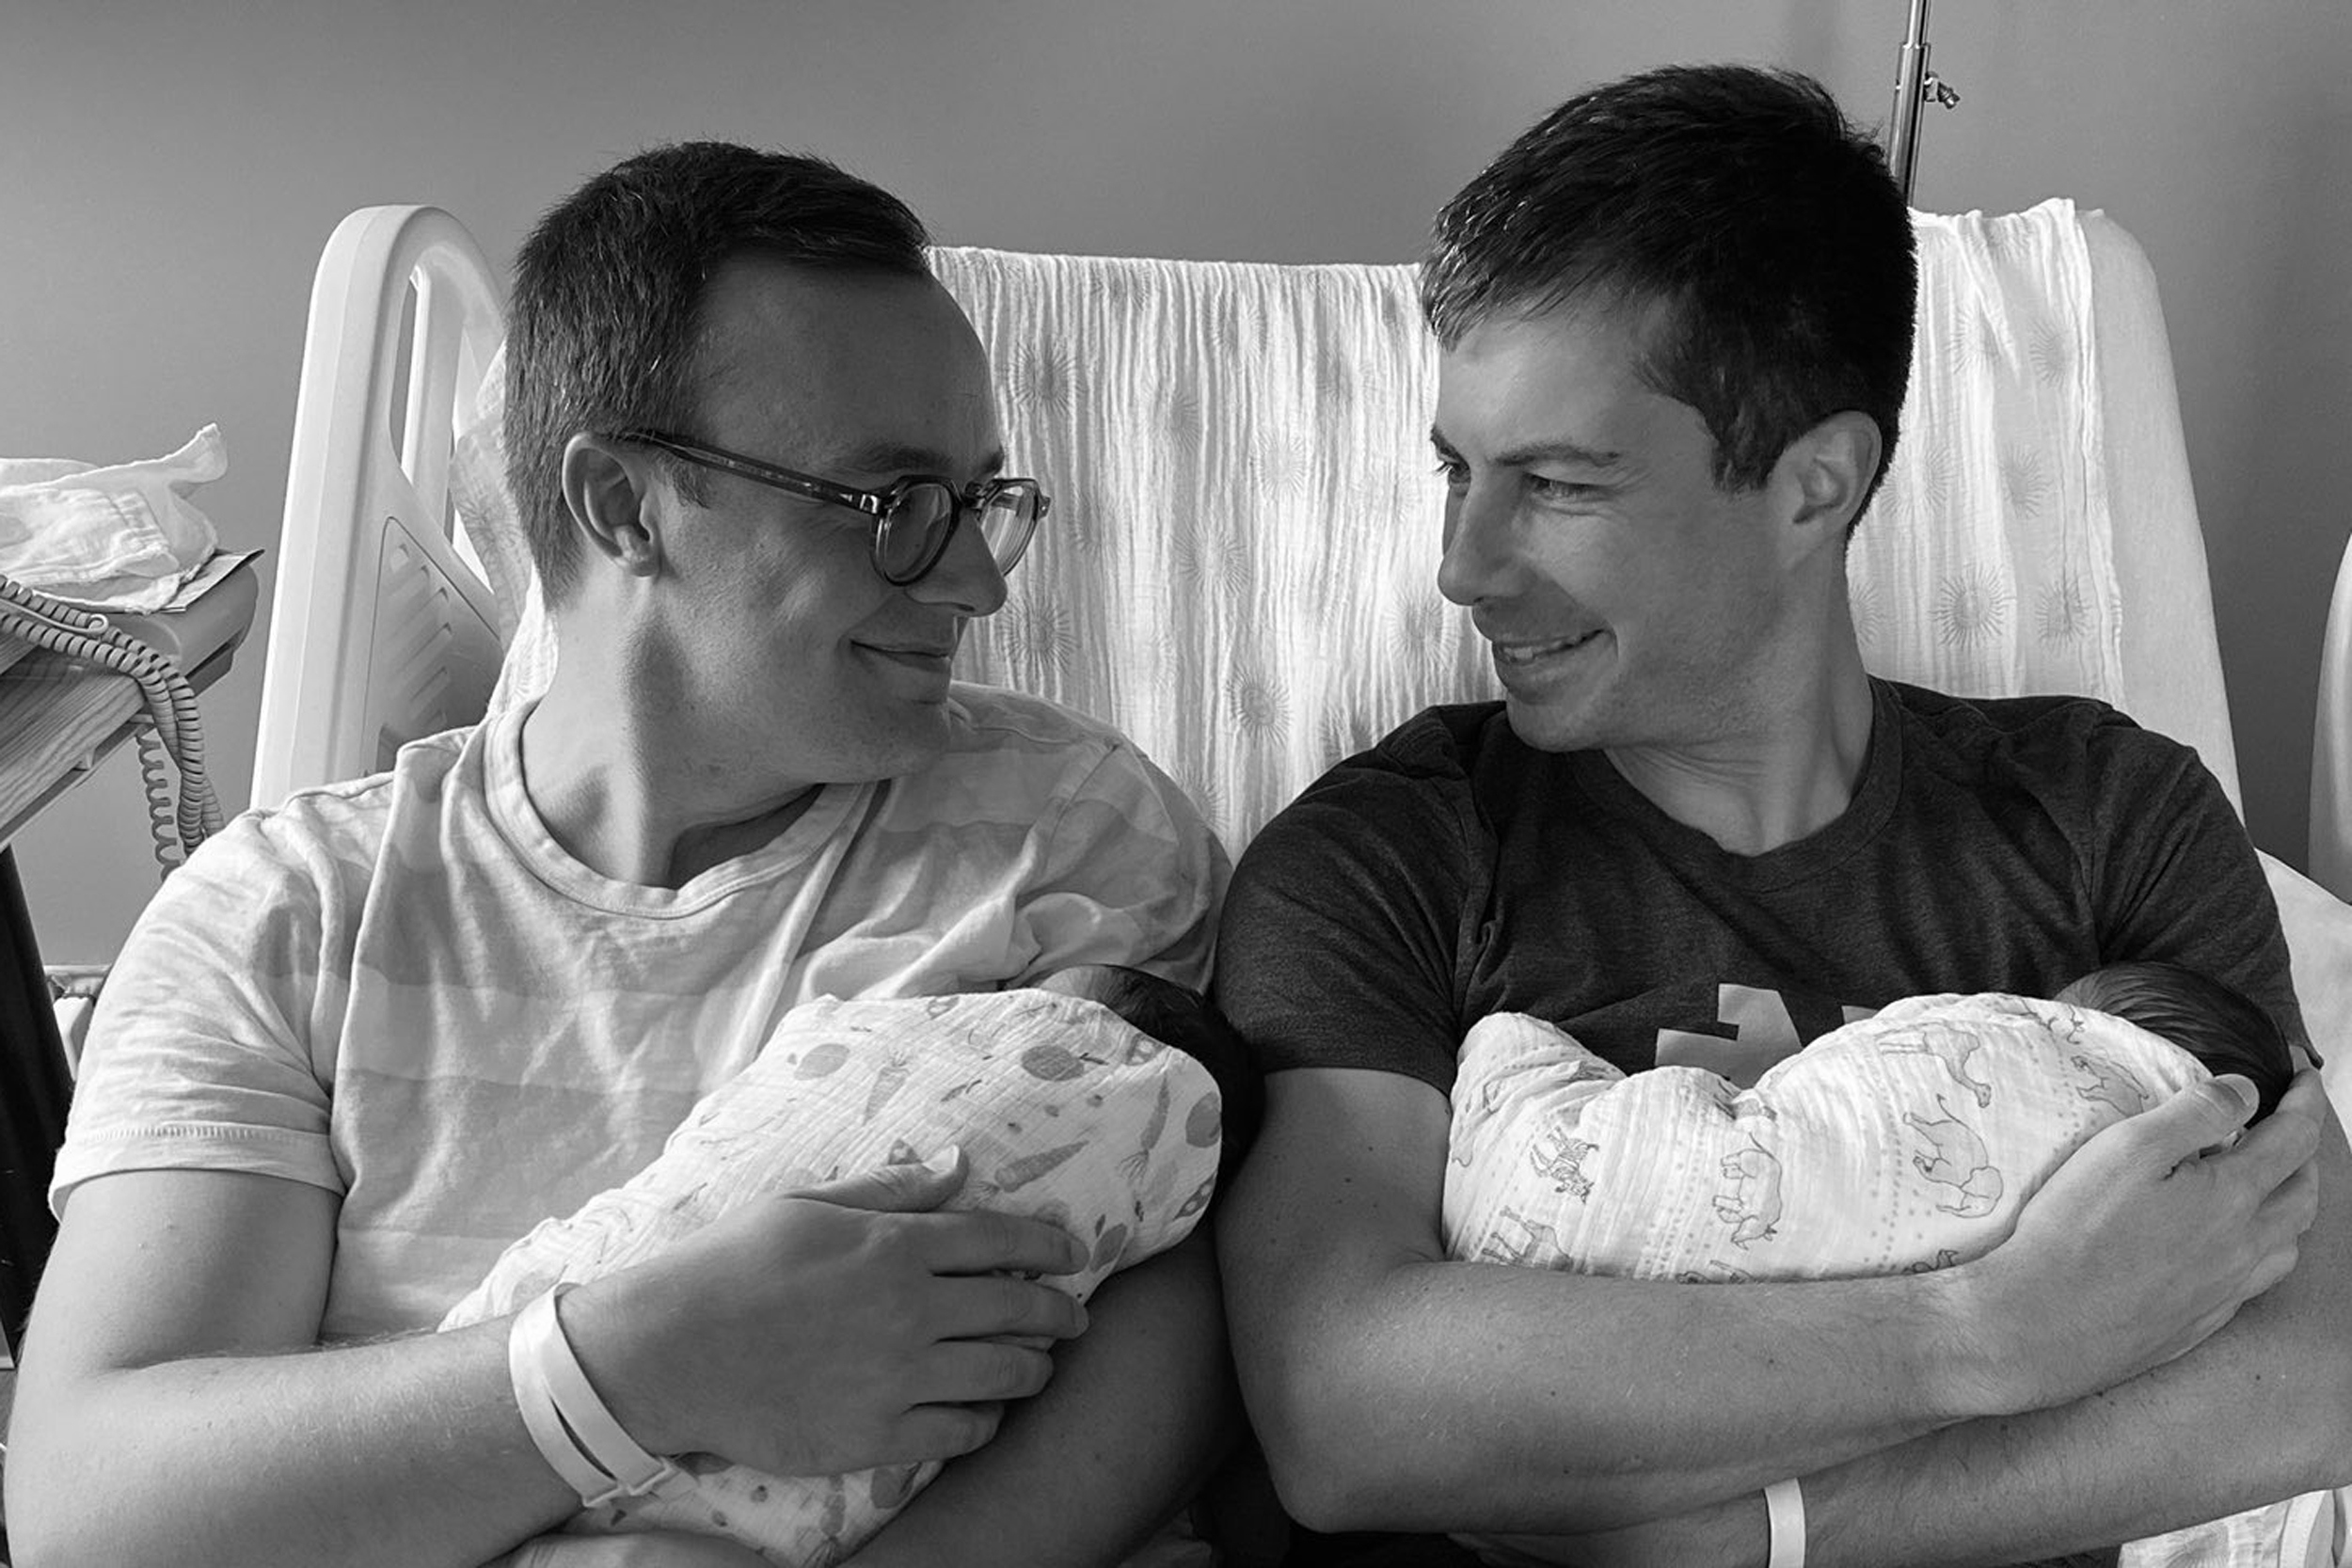 Pete Buttigieg and husband, Chasten, welcome two children into their family